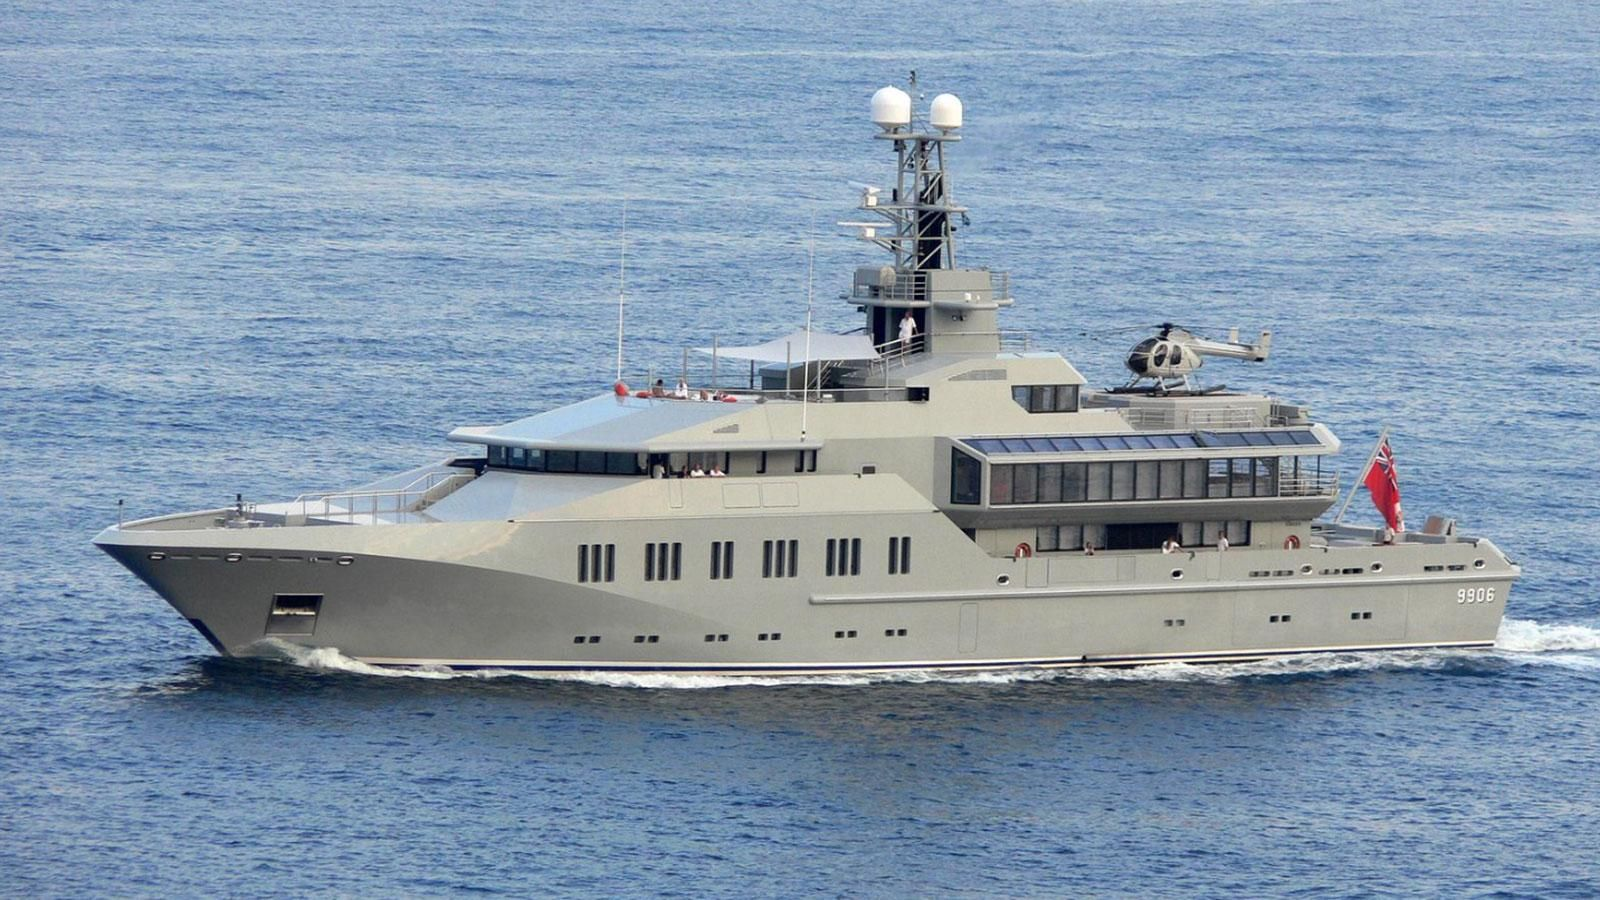 Top 9 Explorer Yachts  Explorer yacht, Expedition yachts, Yacht